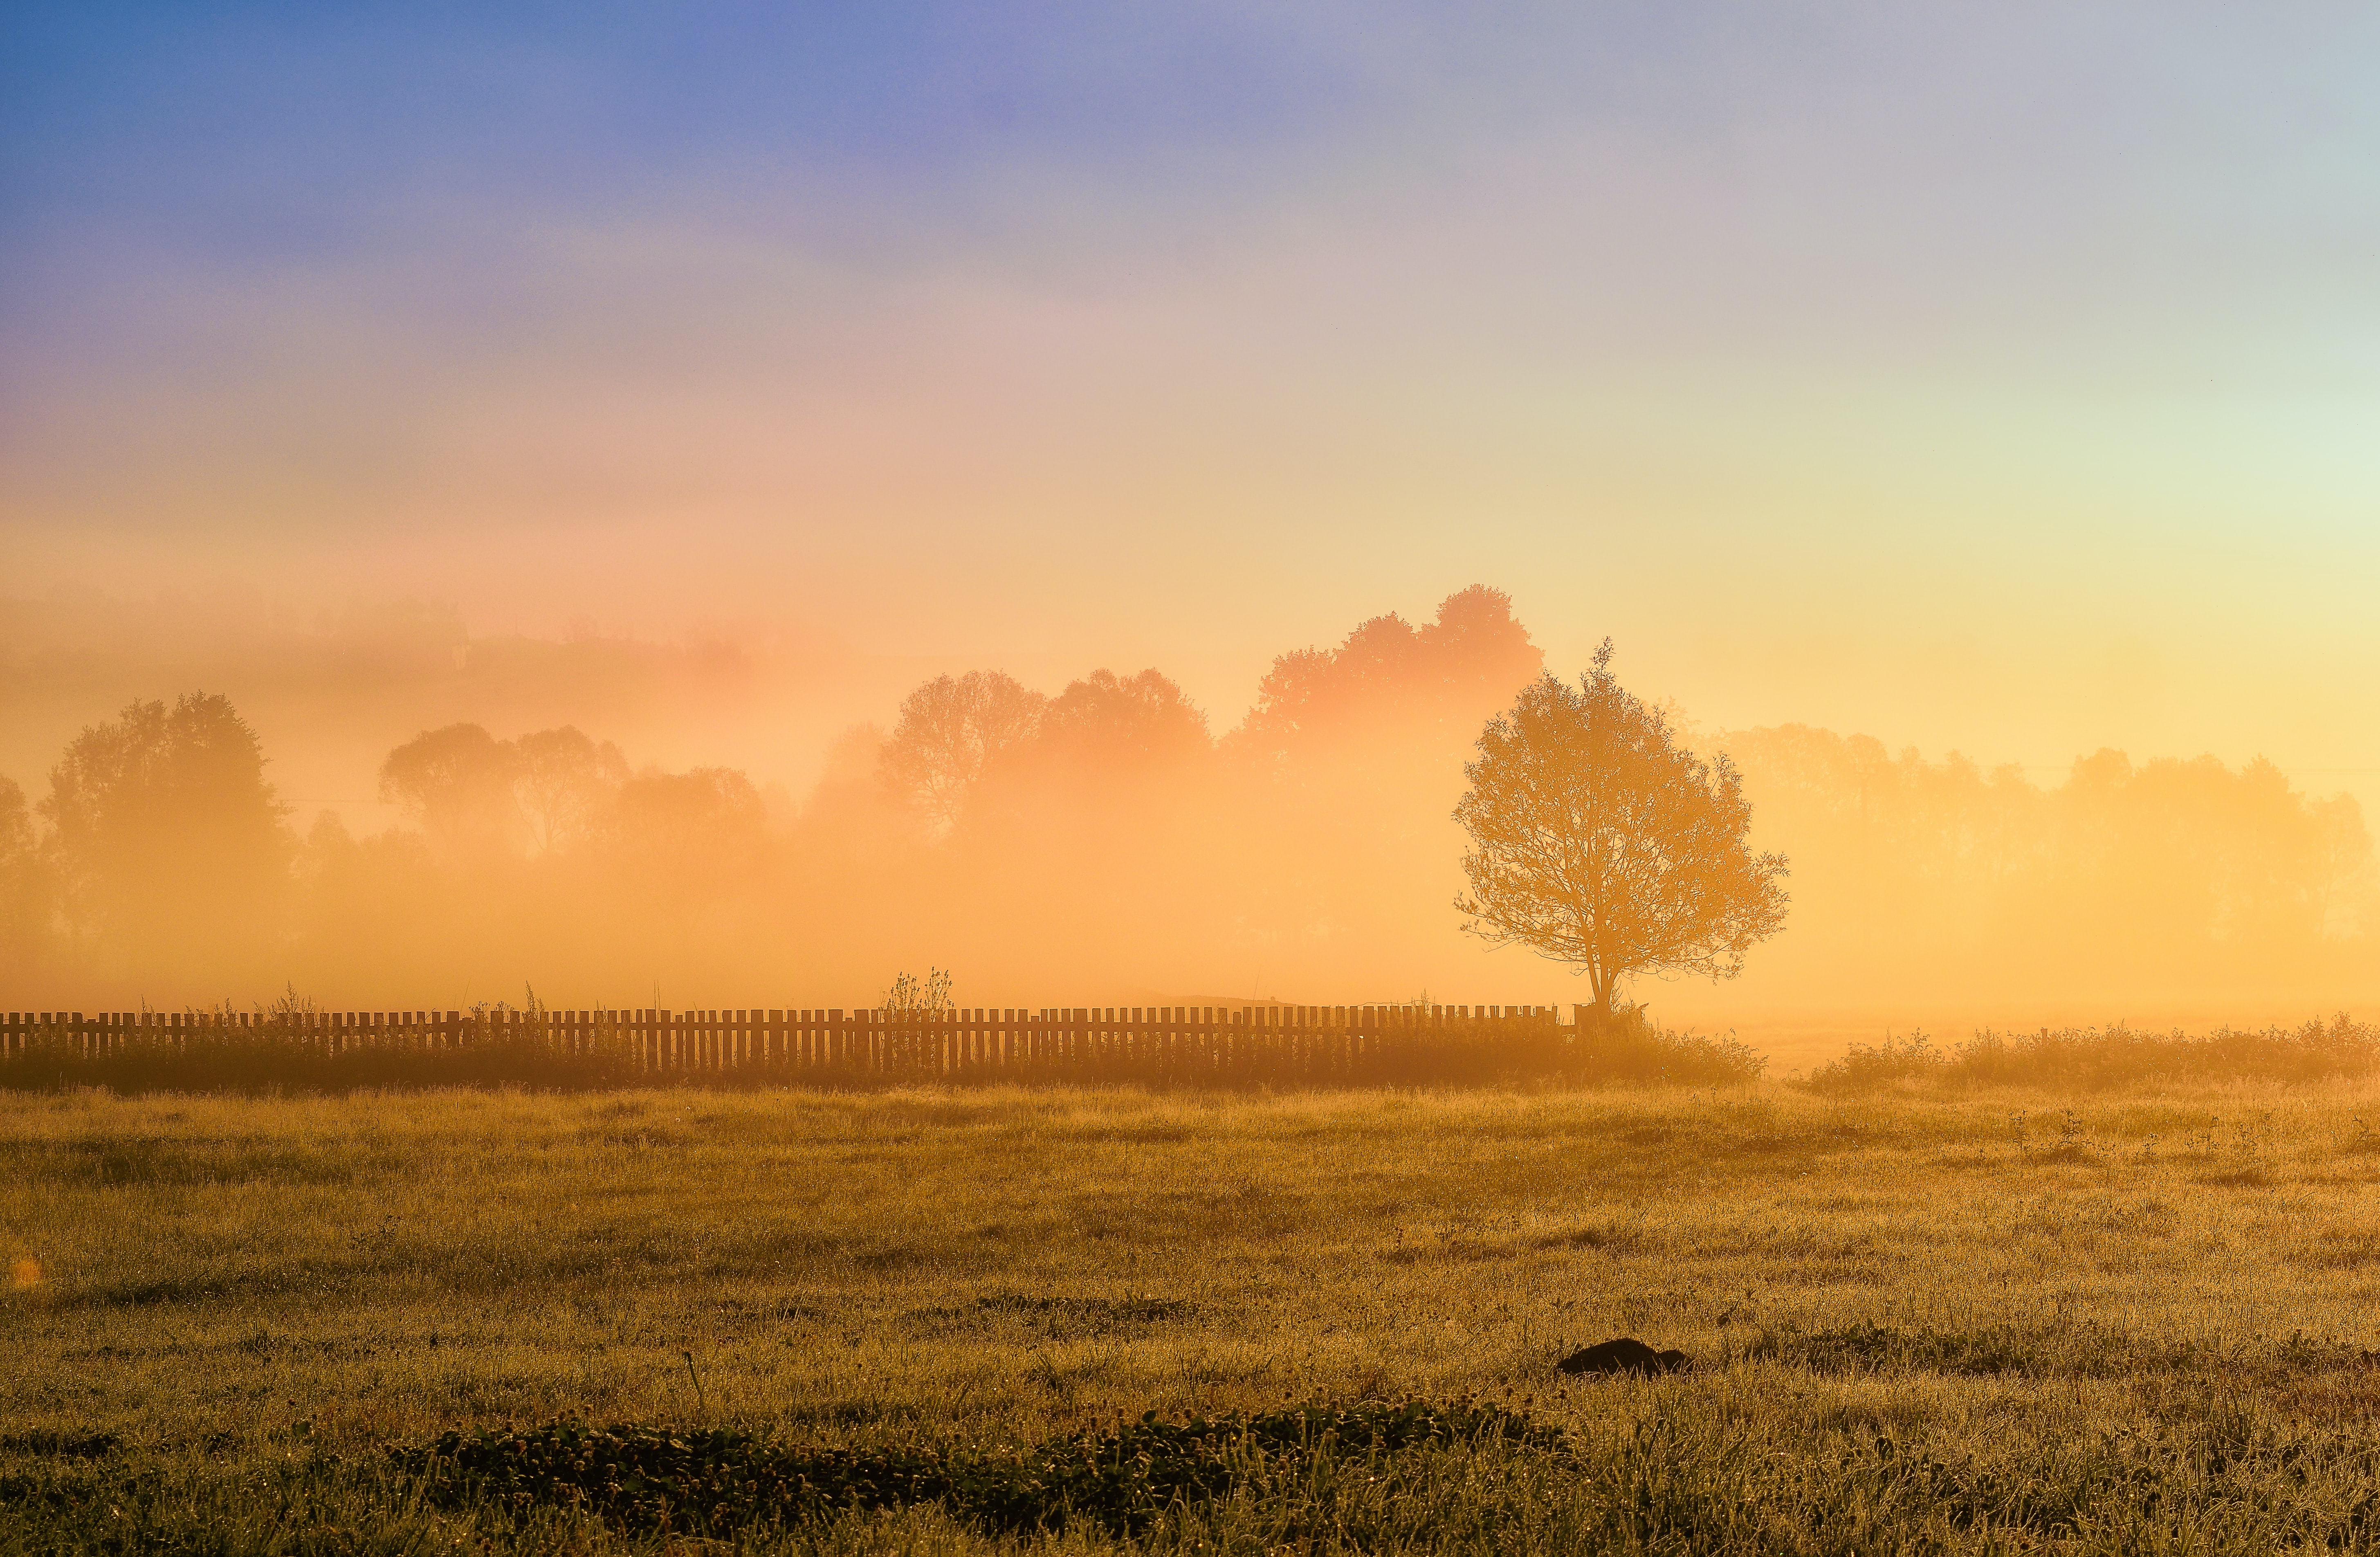 104087 download wallpaper Nature, Wood, Tree, Fence, Grass, Sun screensavers and pictures for free